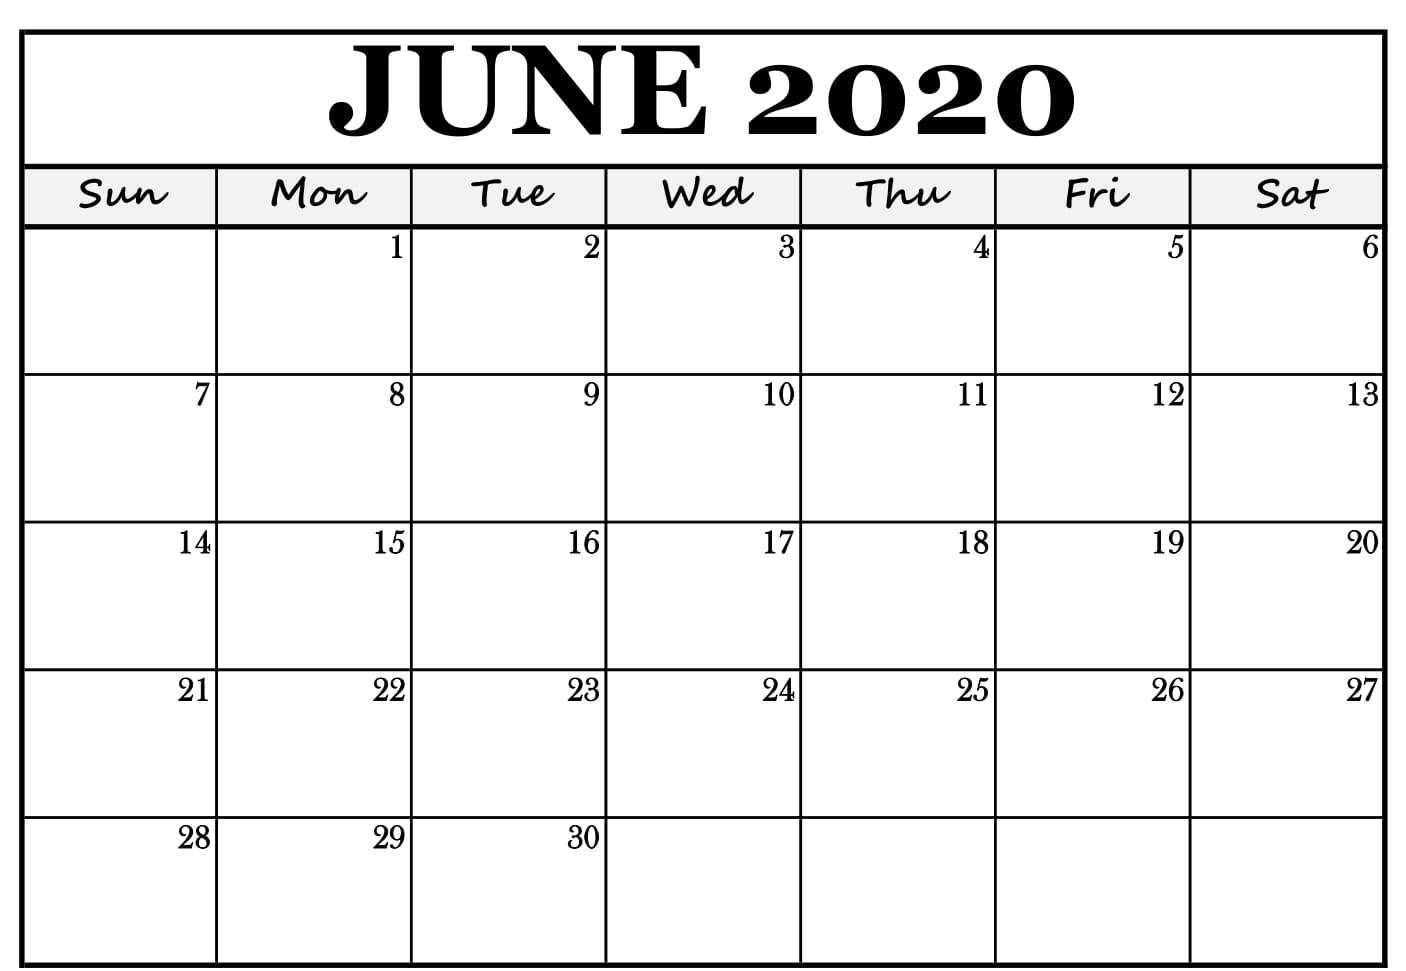 June 2020 Calendar With Notes